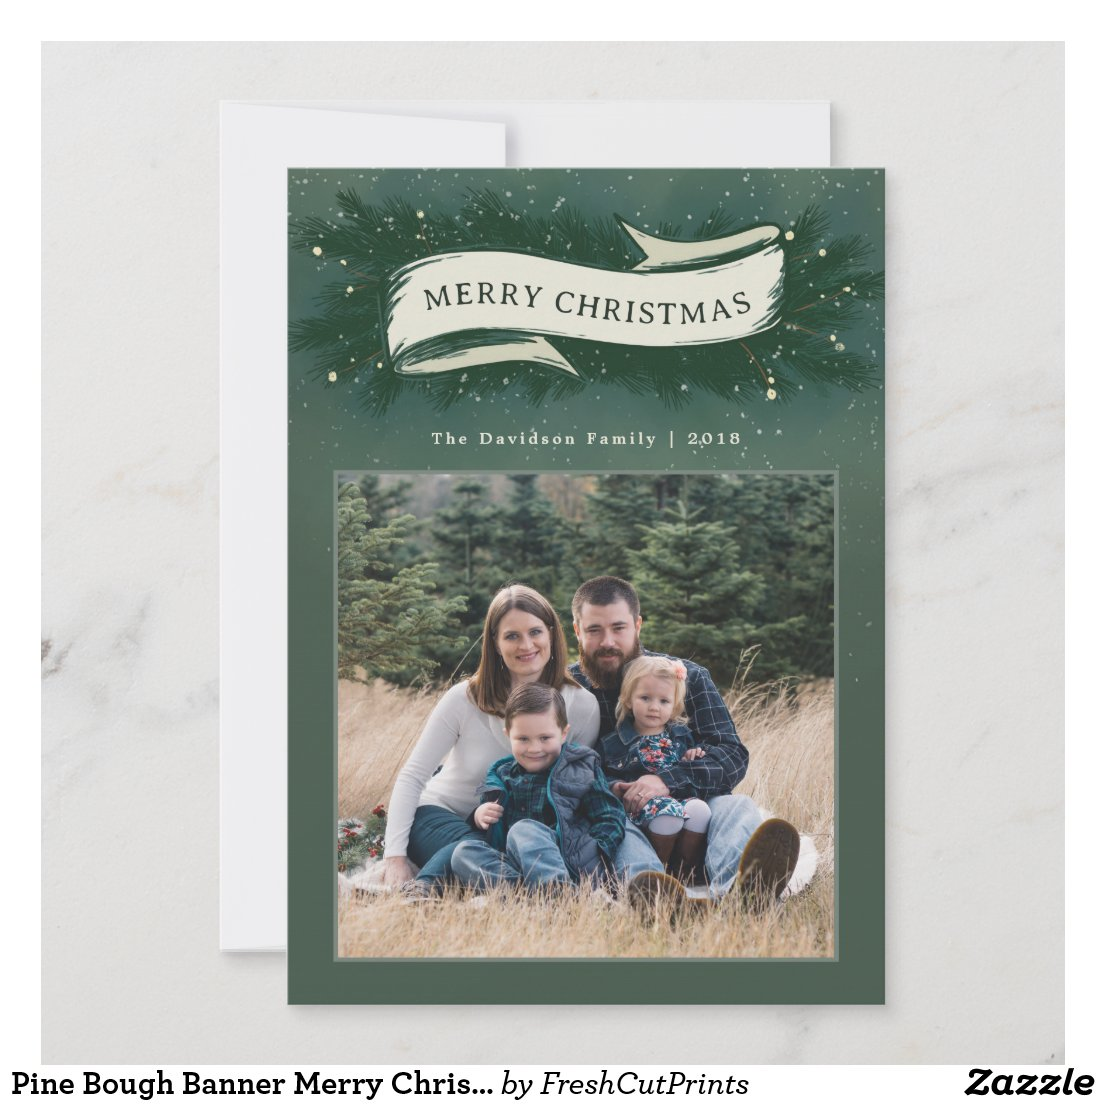 Pine Bough Banner Merry Christmas Photo Card